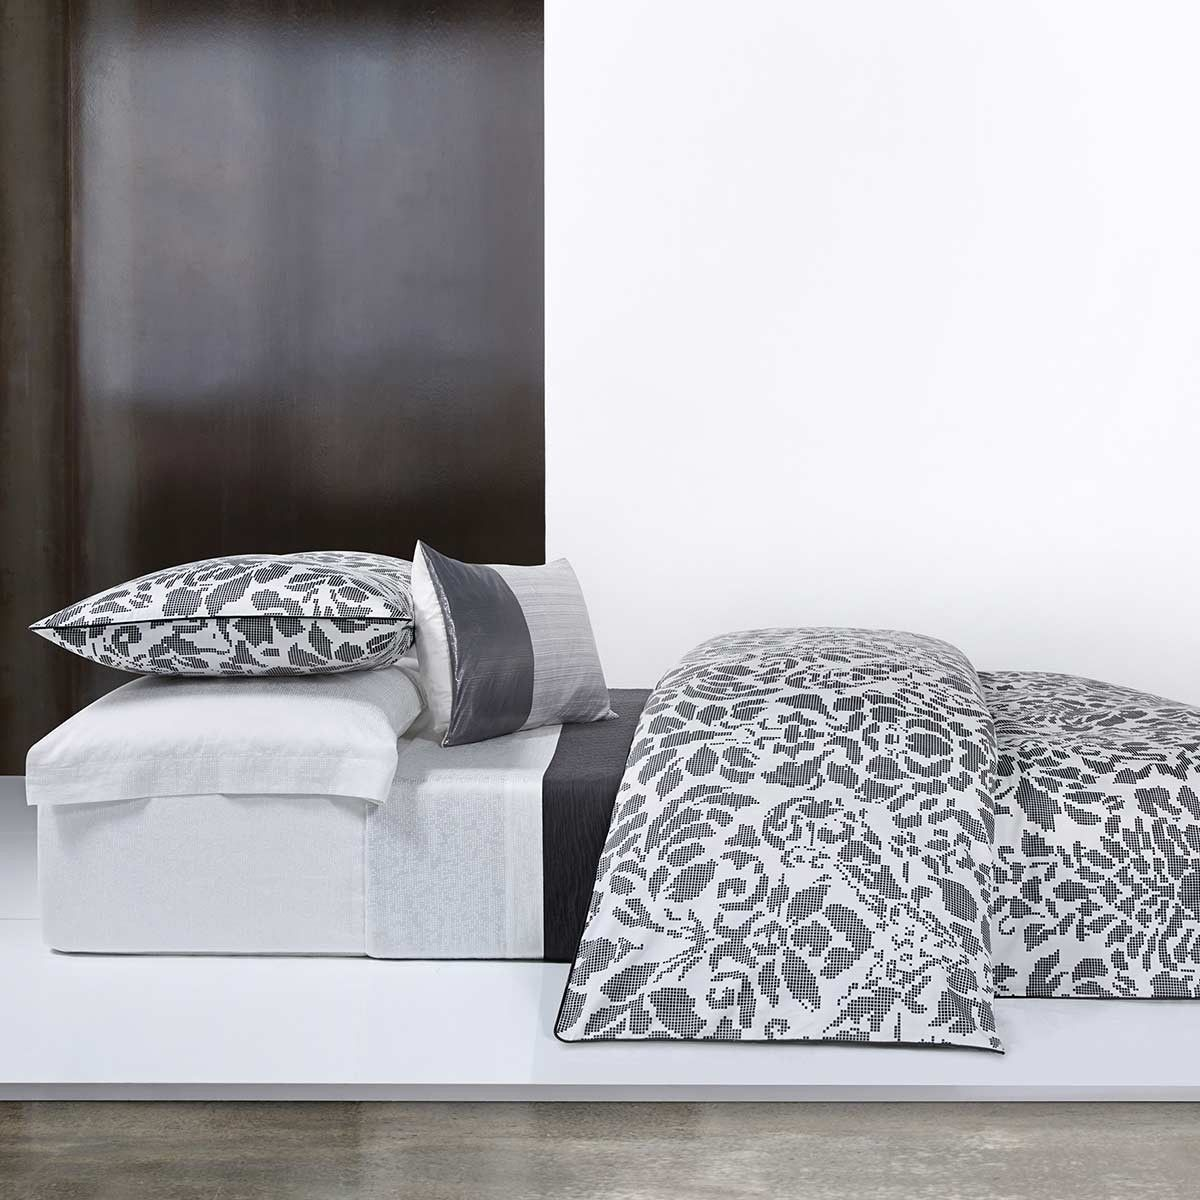 modena bedding by calvin klein home at dotmaison calvin. Black Bedroom Furniture Sets. Home Design Ideas